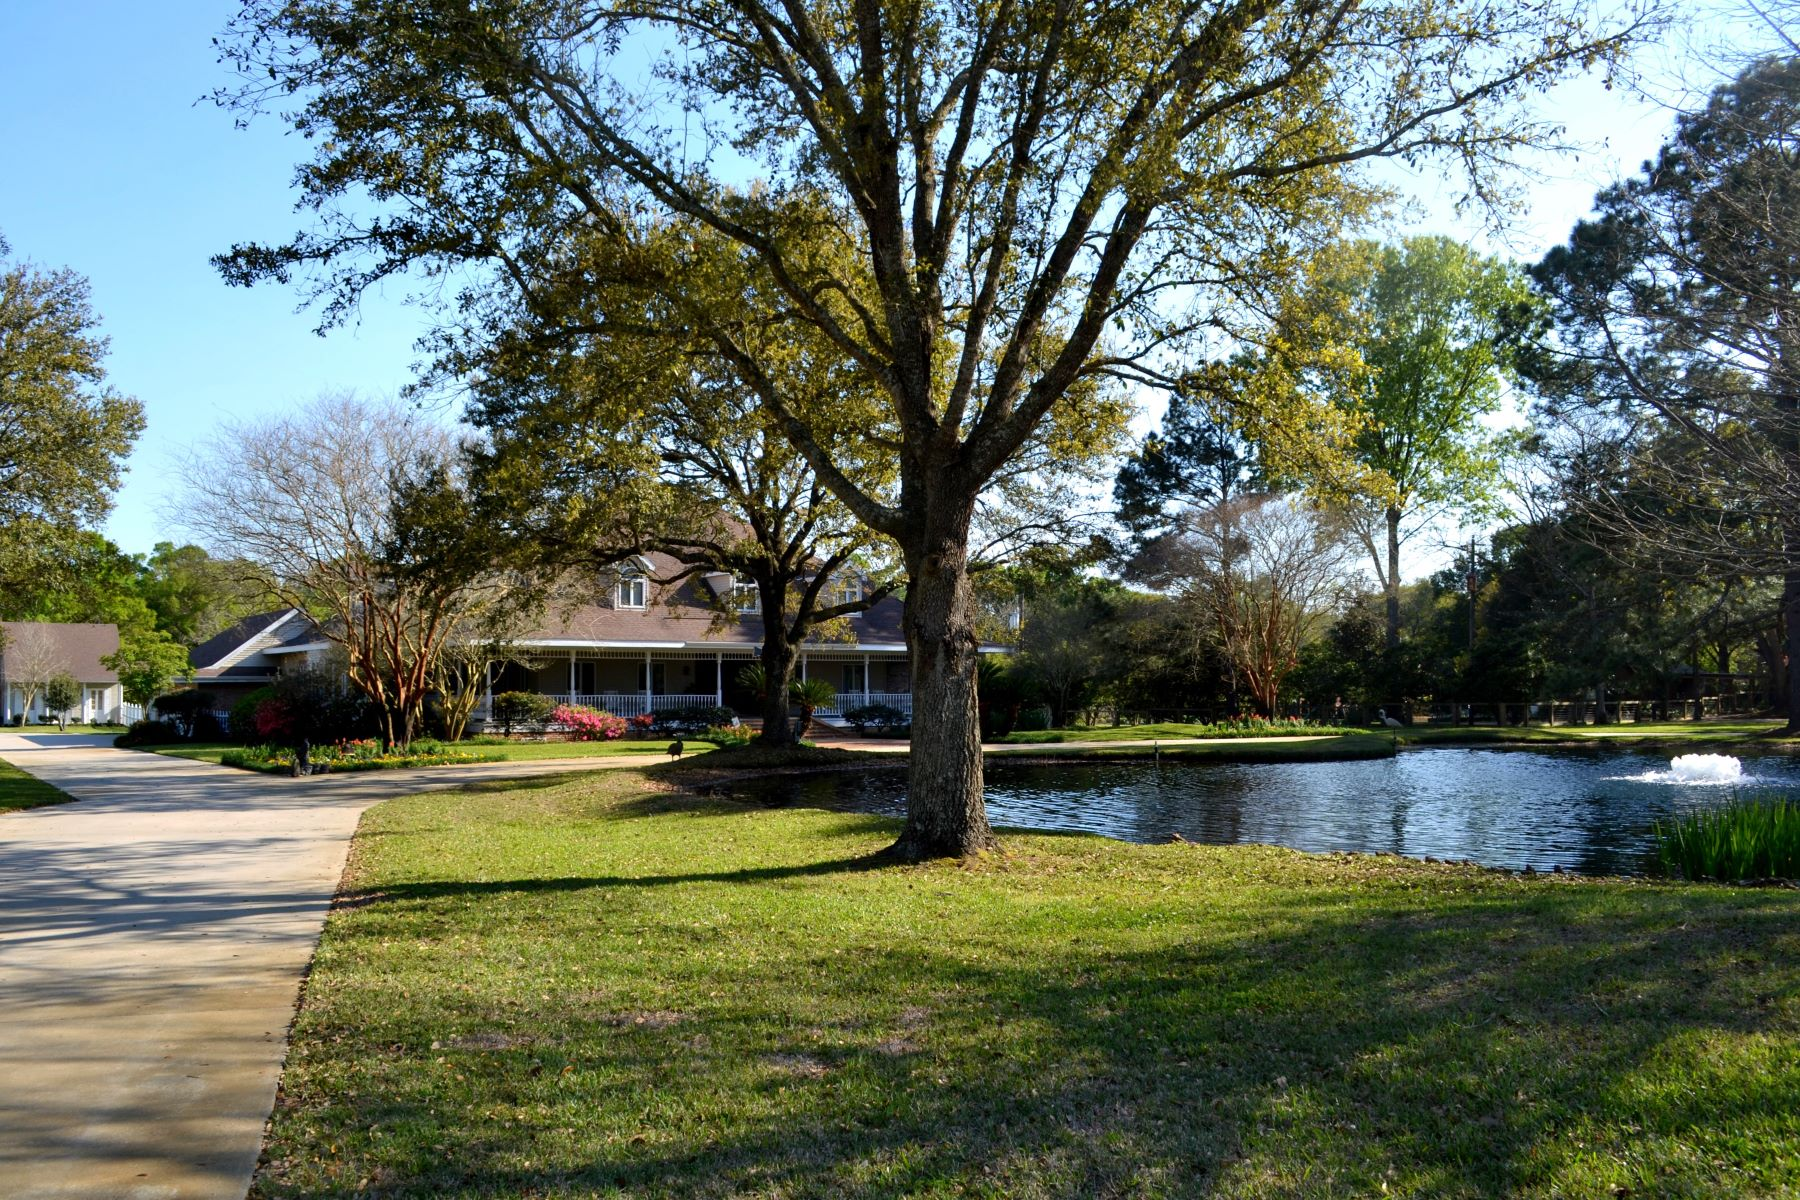 Single Family Home for Active at 111 Kimball Drive, Lafayette 111 Kimball Dr Lafayette, Louisiana 70508 United States